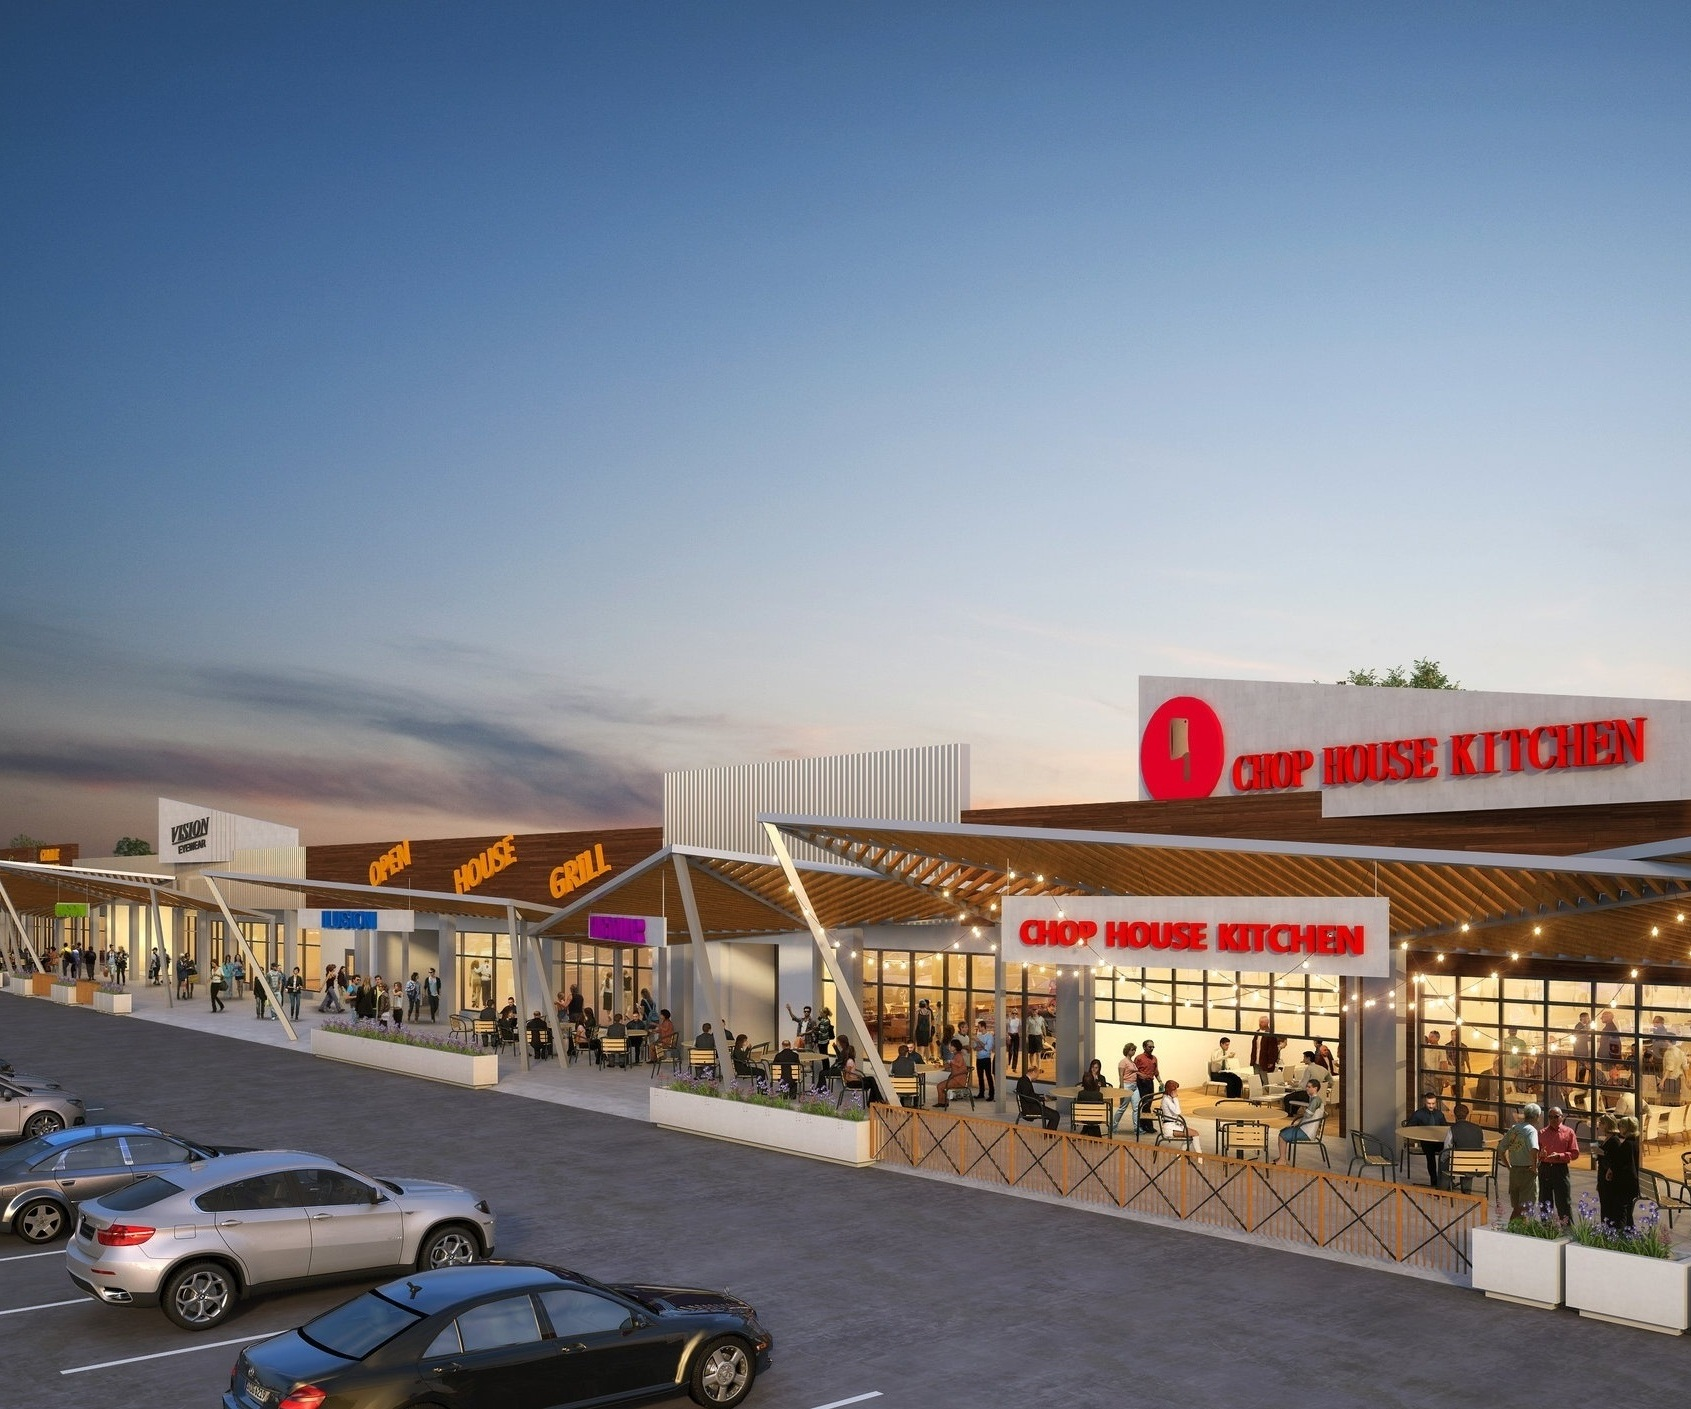 Braun Enterprises Acquires Spring Branch Shopping Center, Plans Redevelopment - HOUSTON BUSINESS JOURNAL